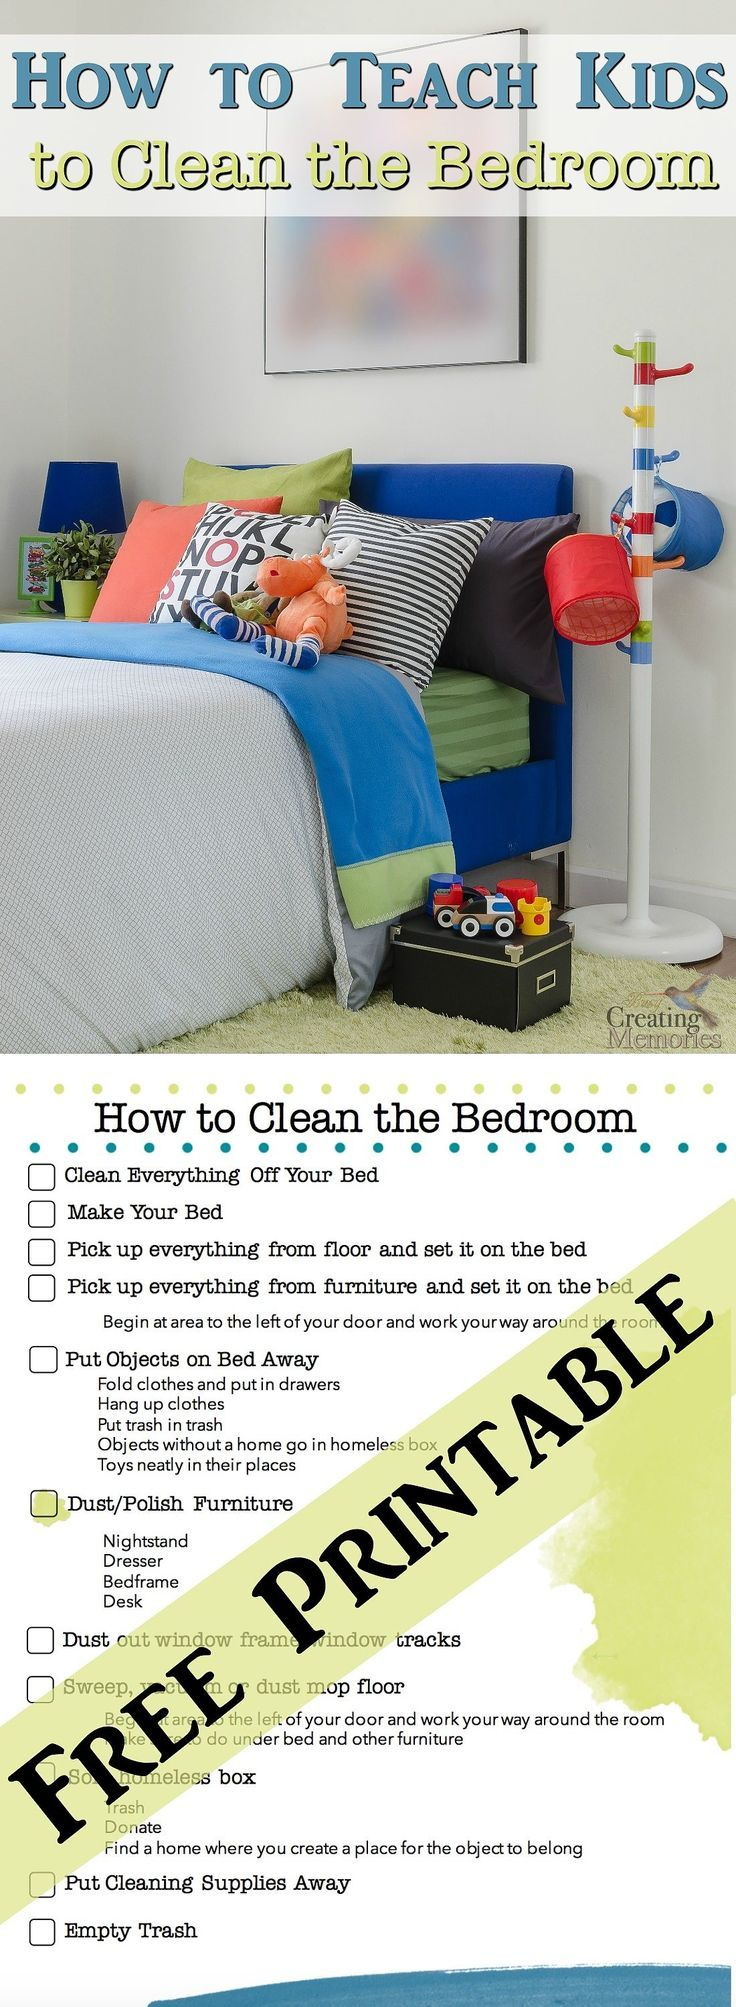 best images about house home and adhd cleanses do you have a child that struggles when you say go clean your room